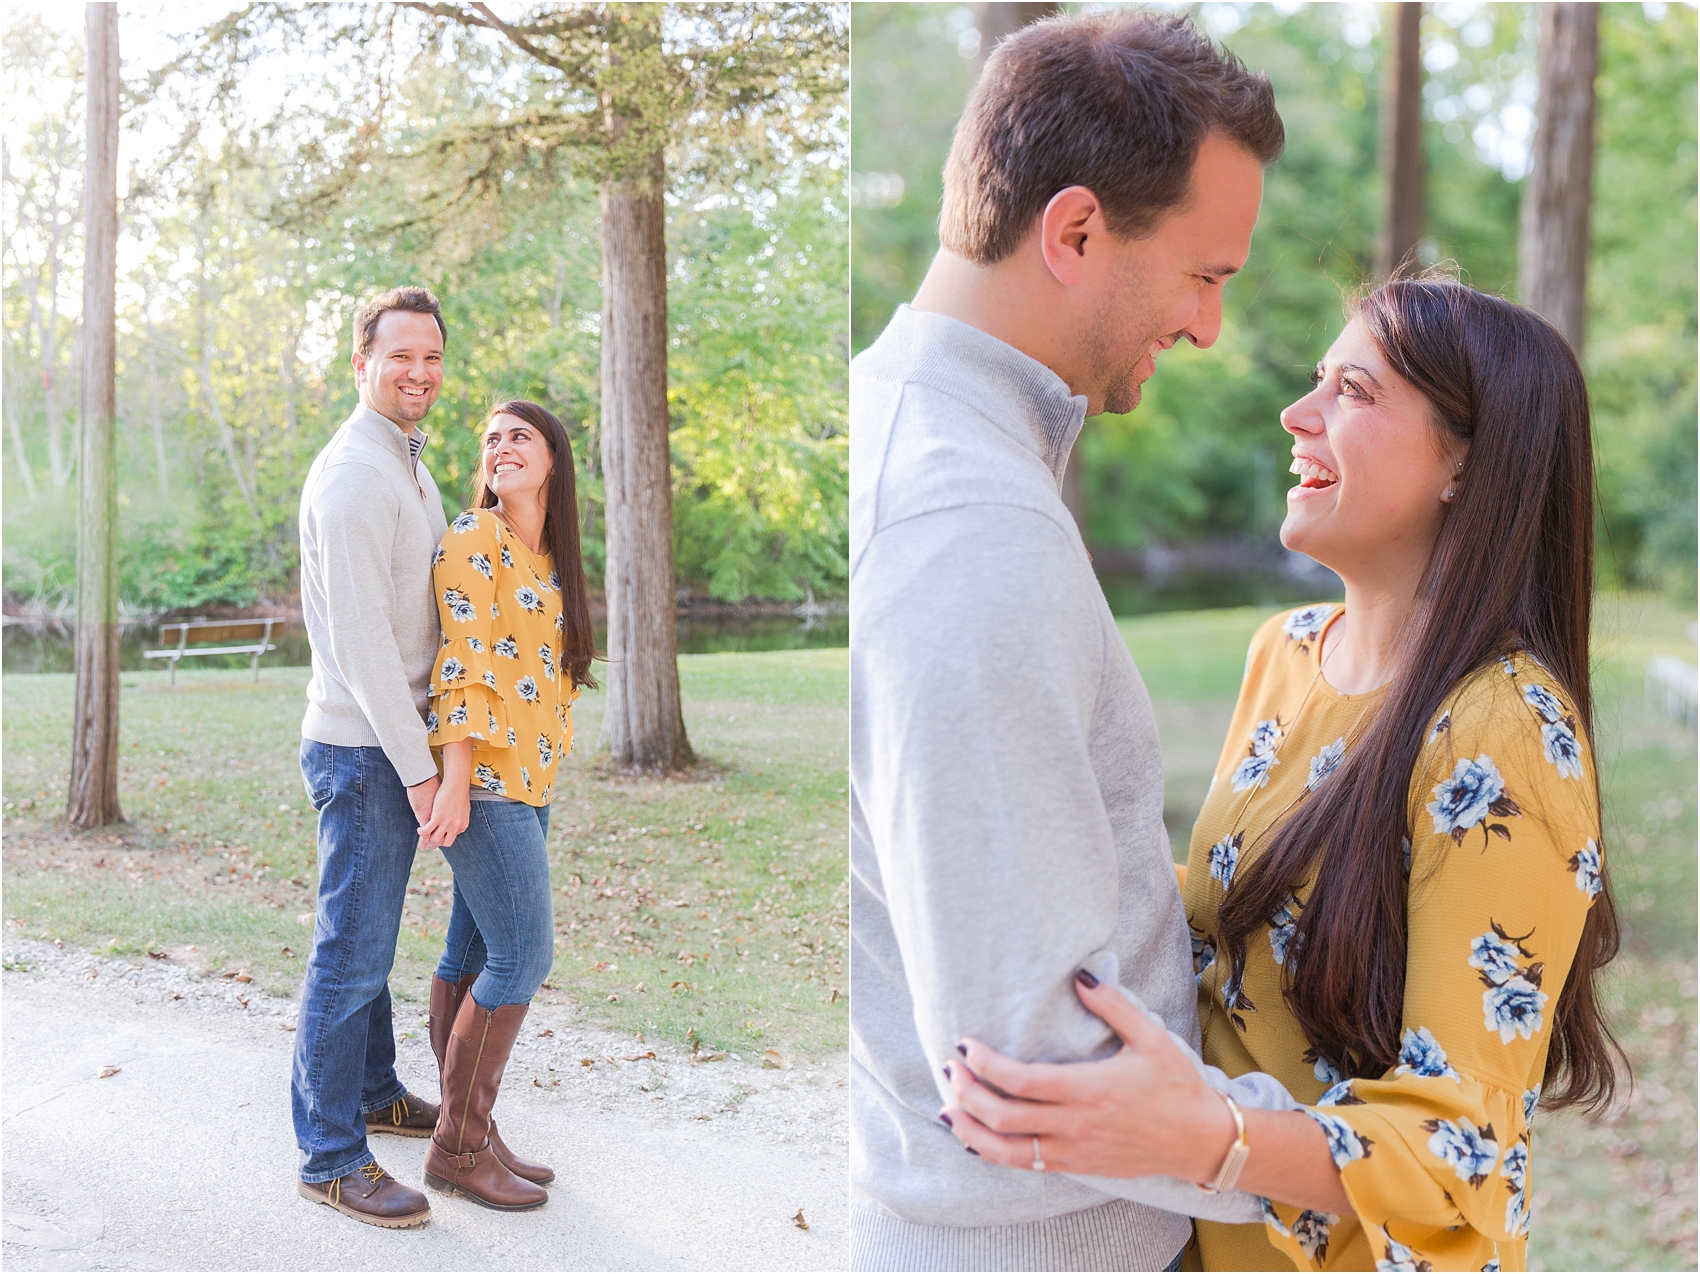 relaxed-autumn-engagement-photos-at-hudson-mills-metropark-in-dexter-mi-by-courtney-carolyn-photography_0024.jpg